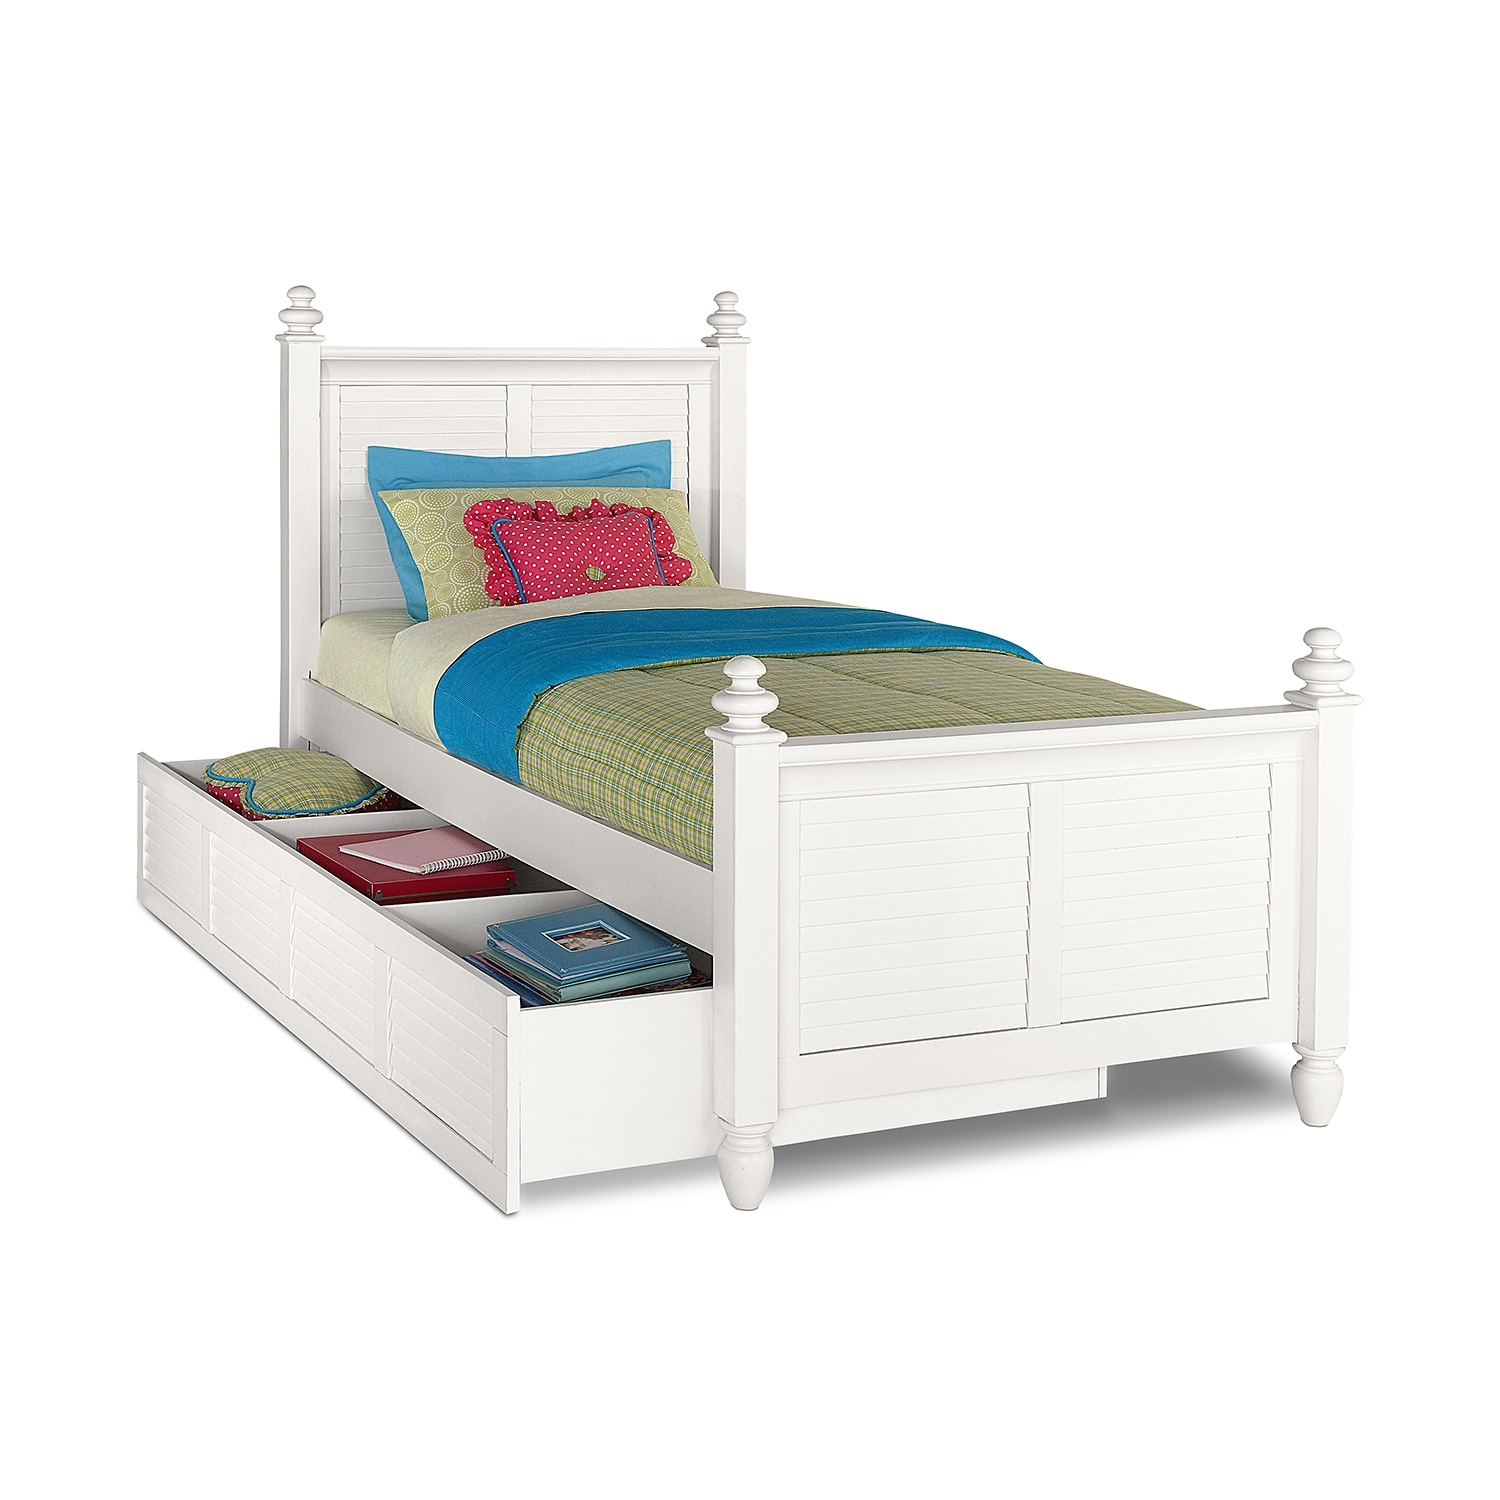 Seaside Twin Bed with Trundle - White